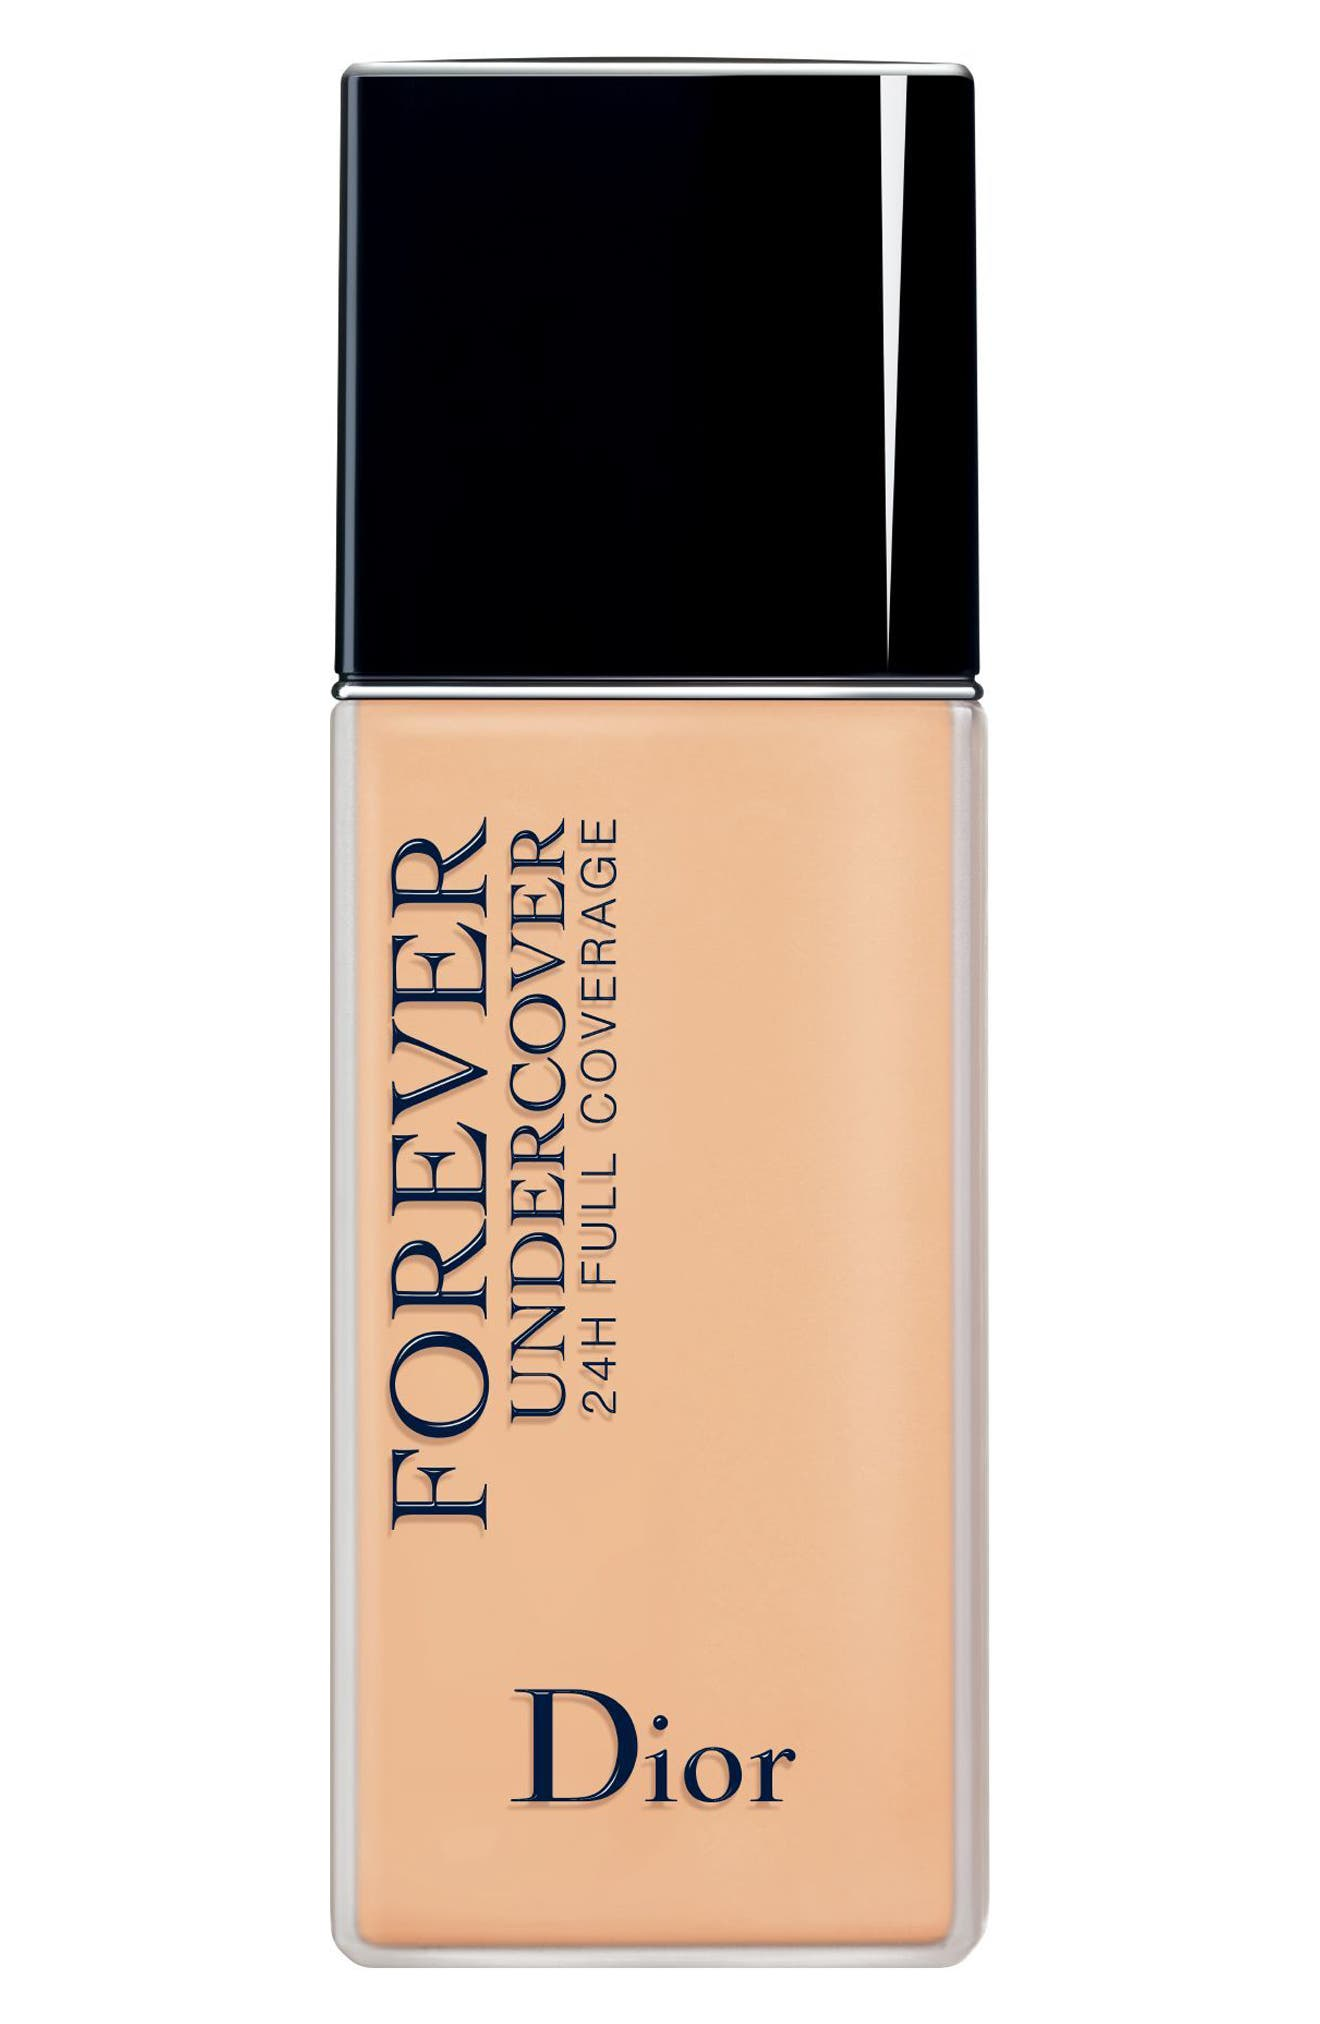 Dior Diorskin Forever Undercover 24-Hour Full Coverage Water-Based Foundation - 031 Sand